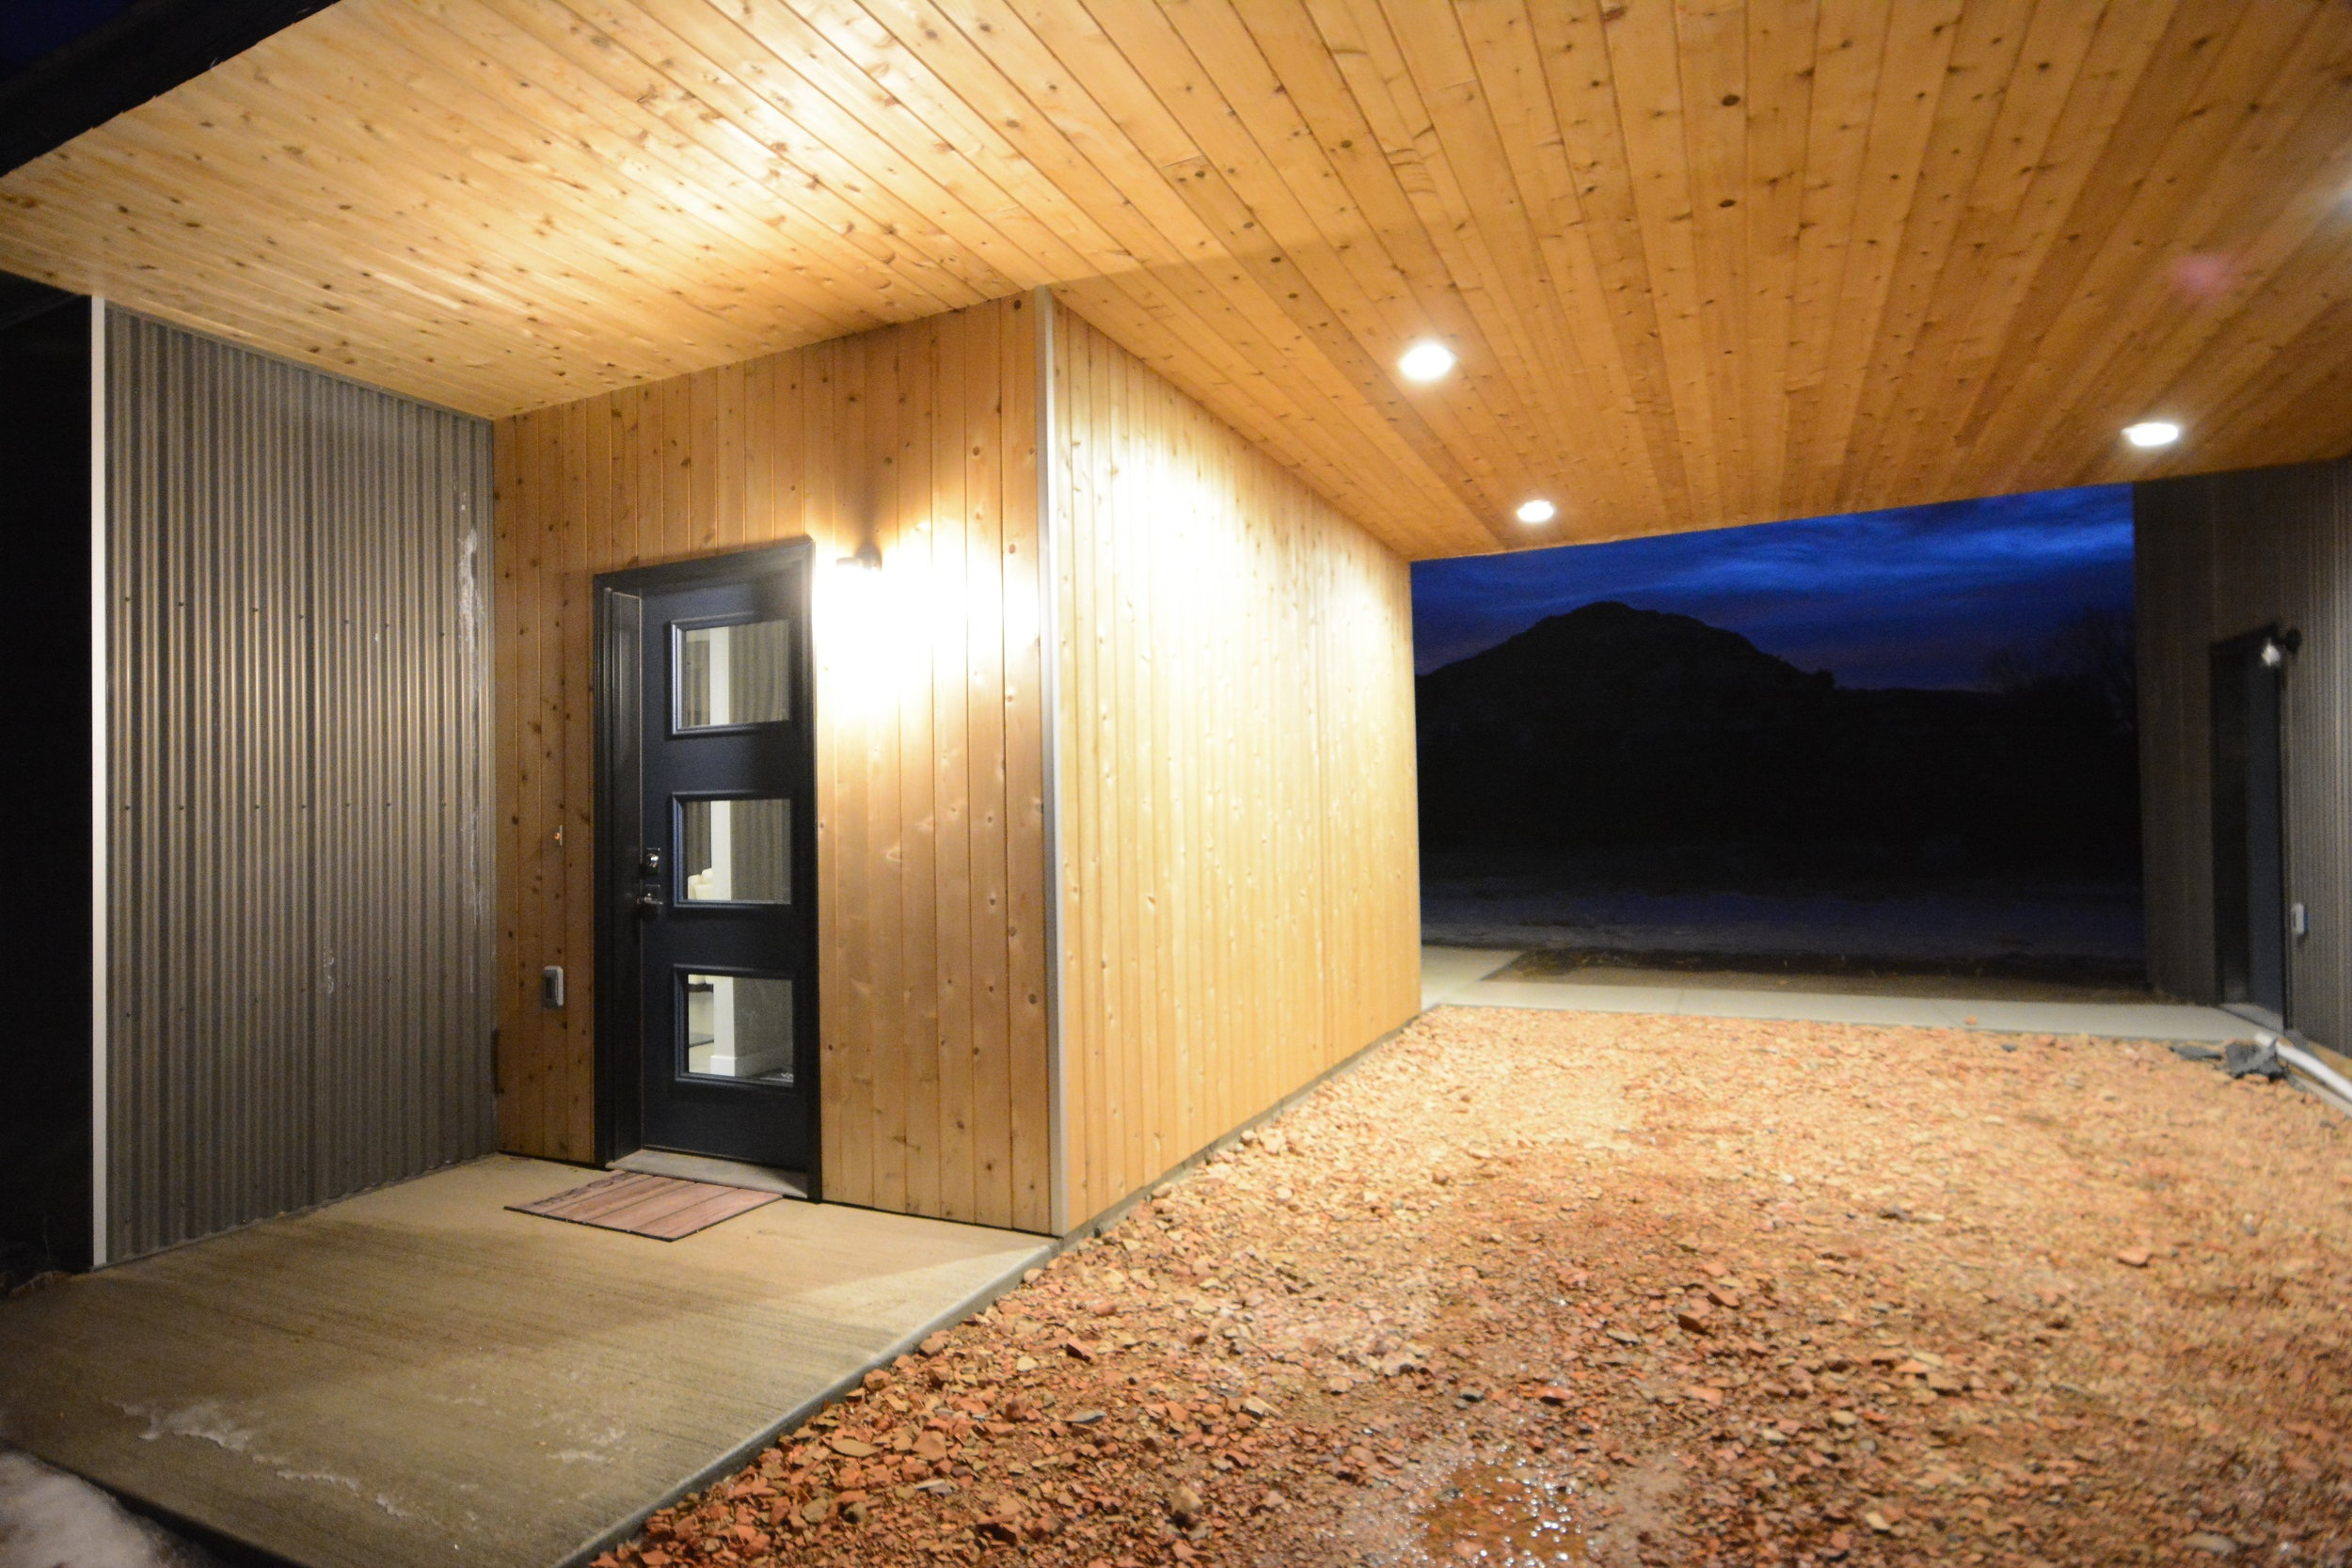 The front door was placed next to the carport strategically.